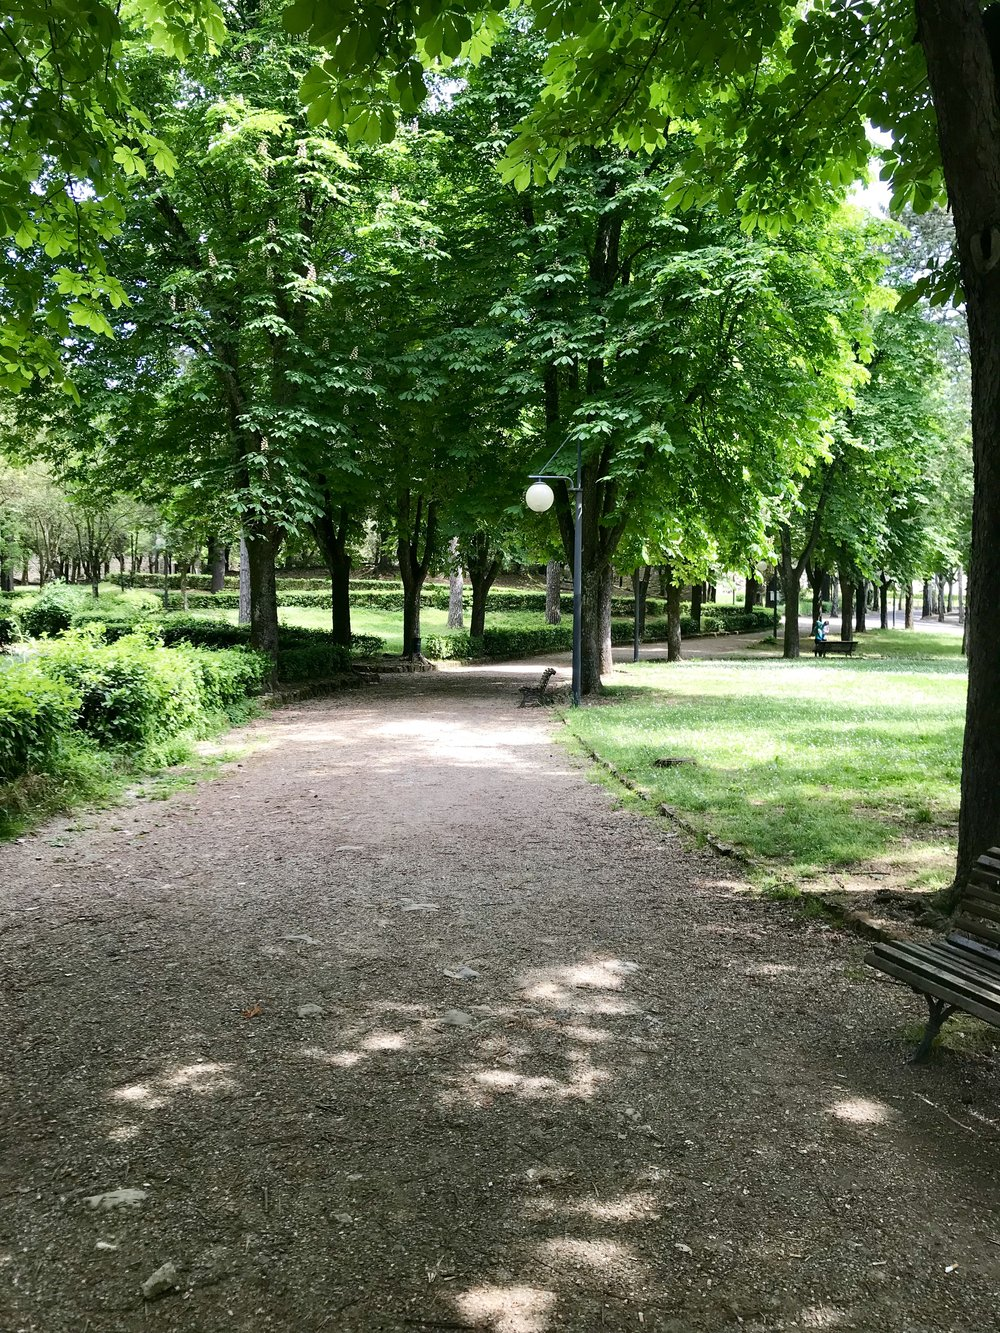 One of the parks in Arezzo